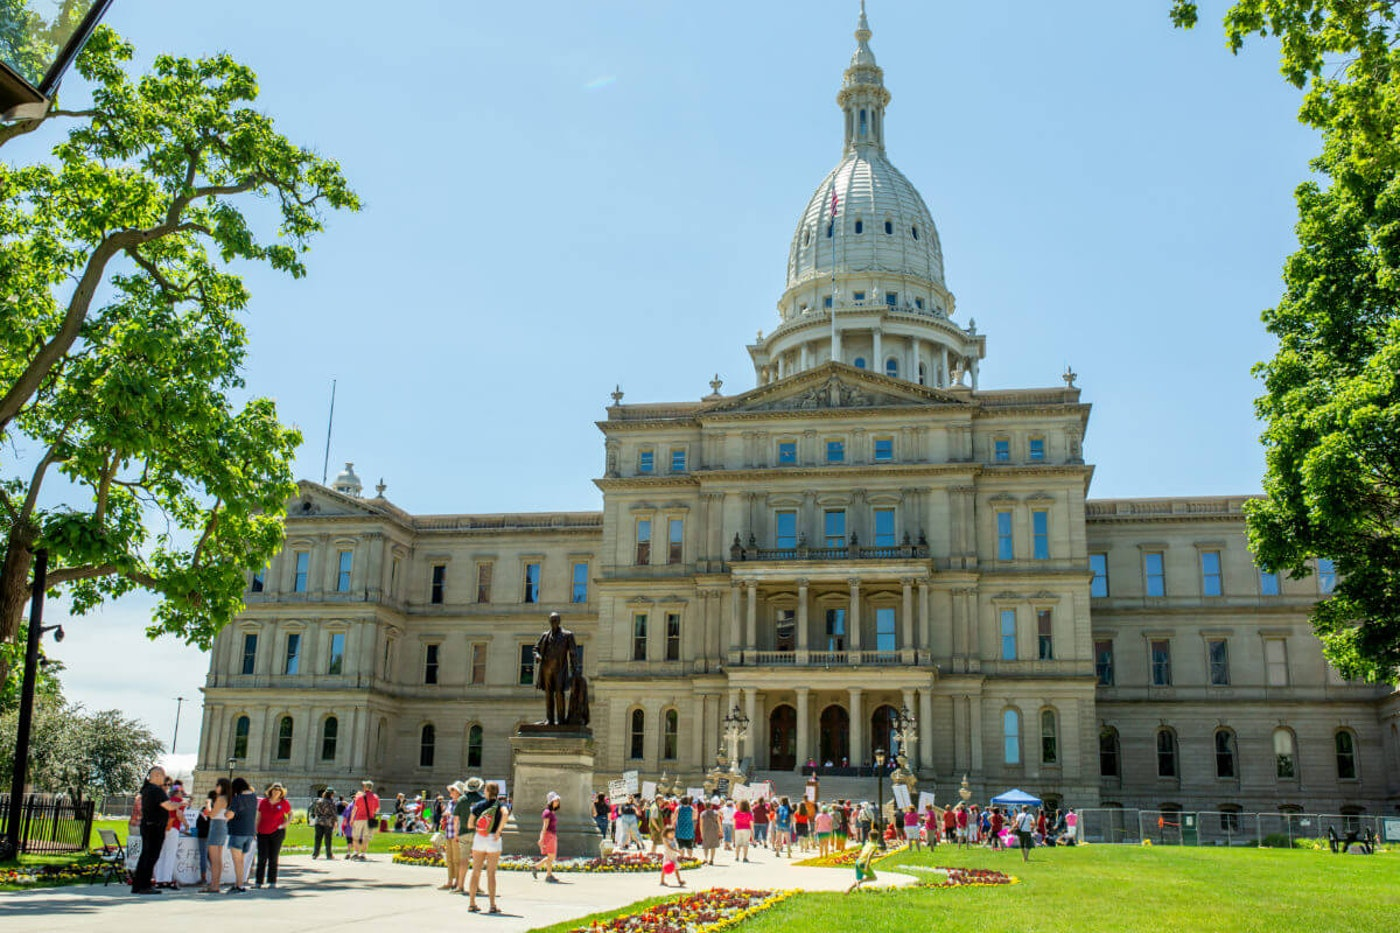 A pro-choice rally held at Michigan's state capitol building in 2019. Image via Shutterstock